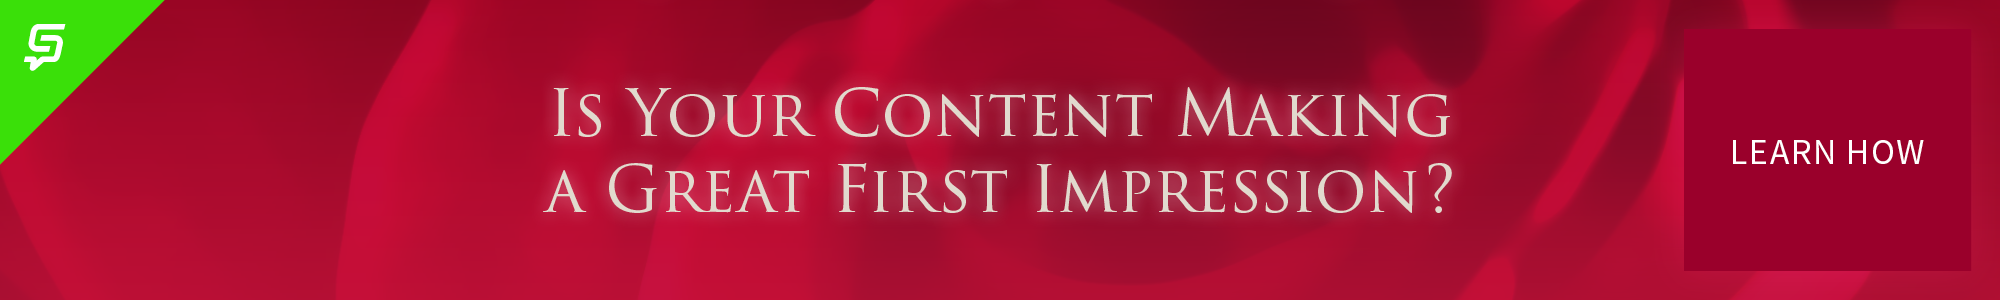 Is-Your-Content-Making-a-Good-First-Impression?